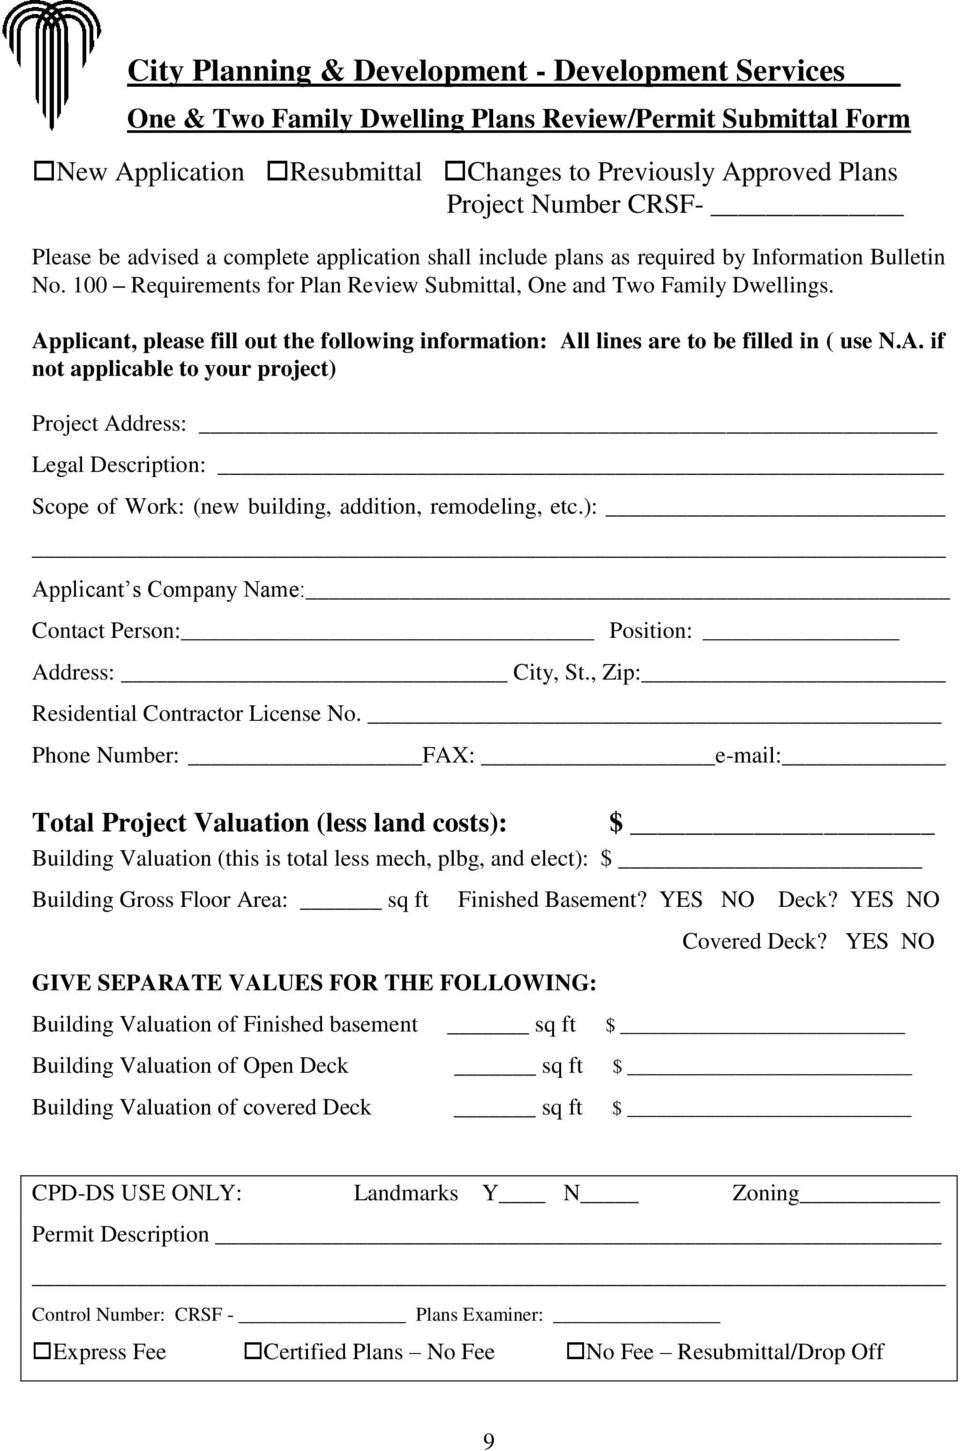 Applicant, please fill out the following information: All lines are to be filled in ( use N.A. if not applicable to your project) Project Address: Legal Description: Scope of Work: (new building, addition, remodeling, etc.